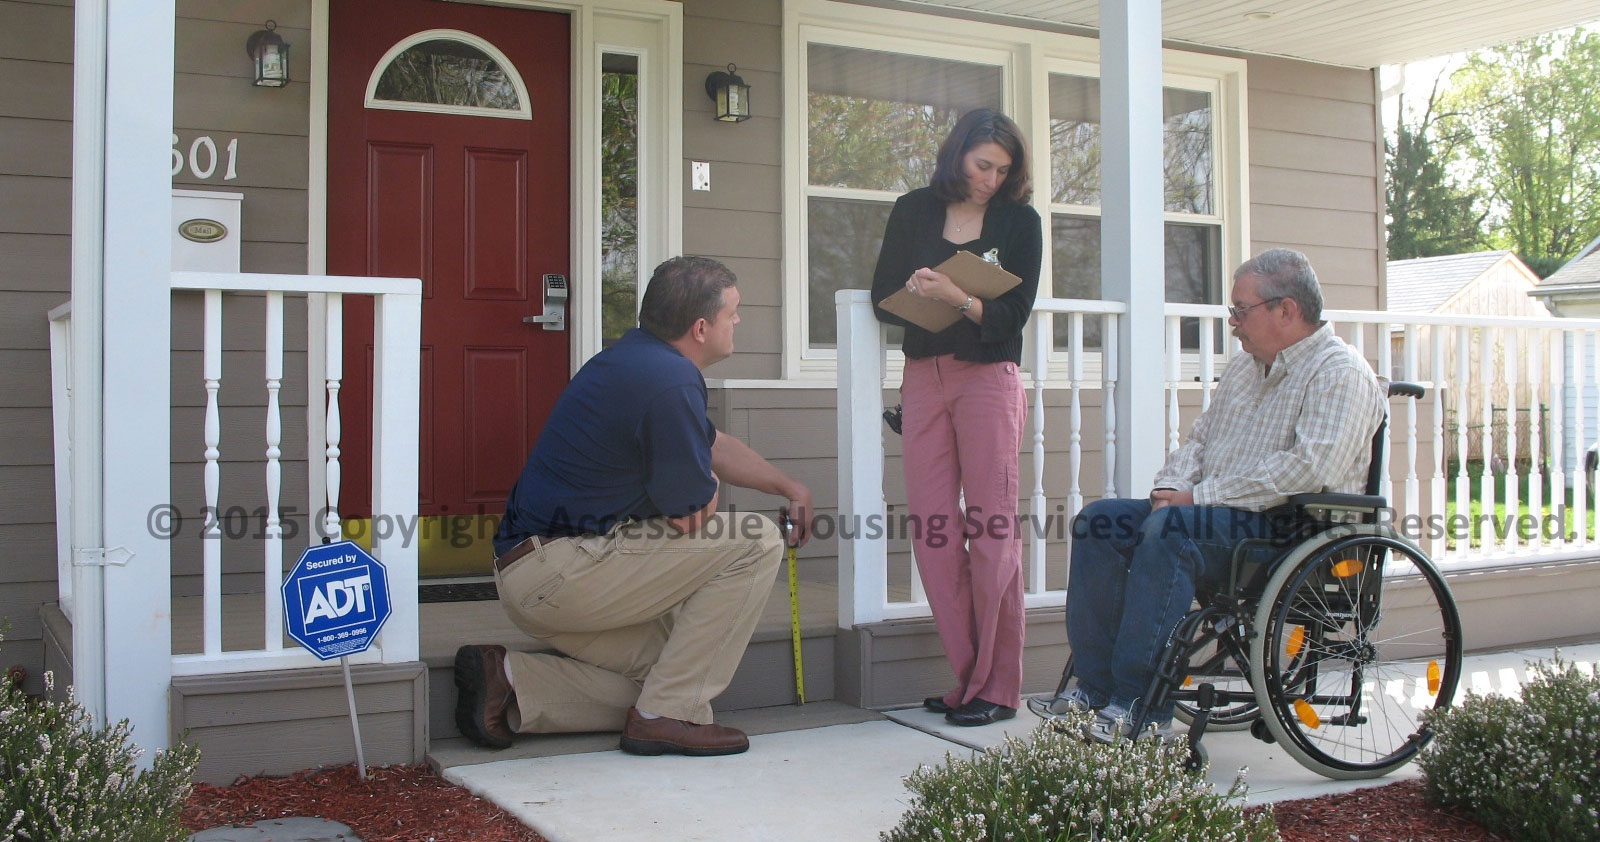 Measuring Wheelchair Accessible Home Entrance Accessible